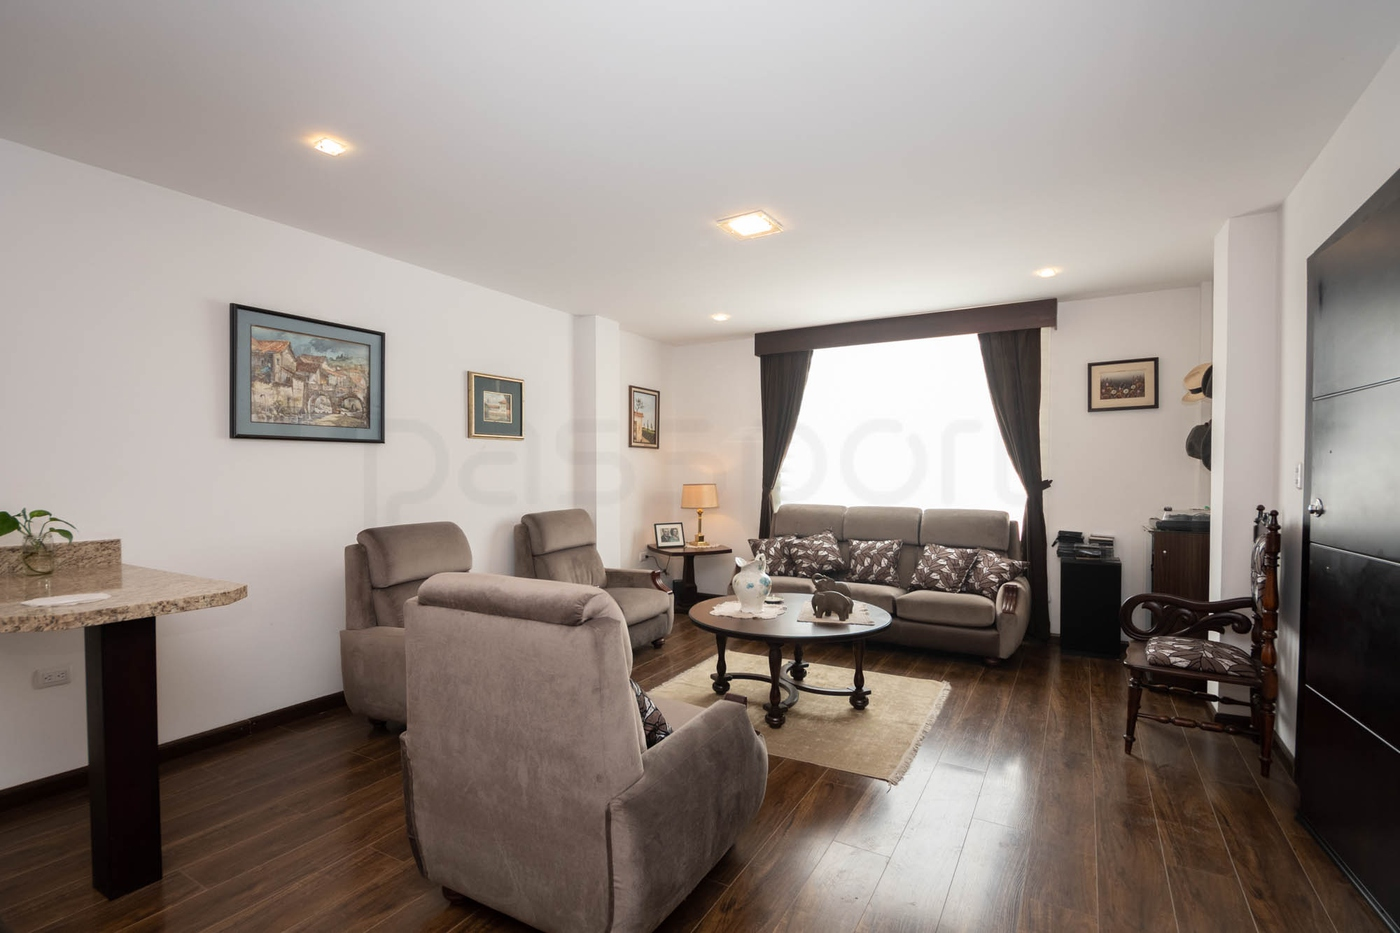 <p>At the reasonable price of $400 per month this…